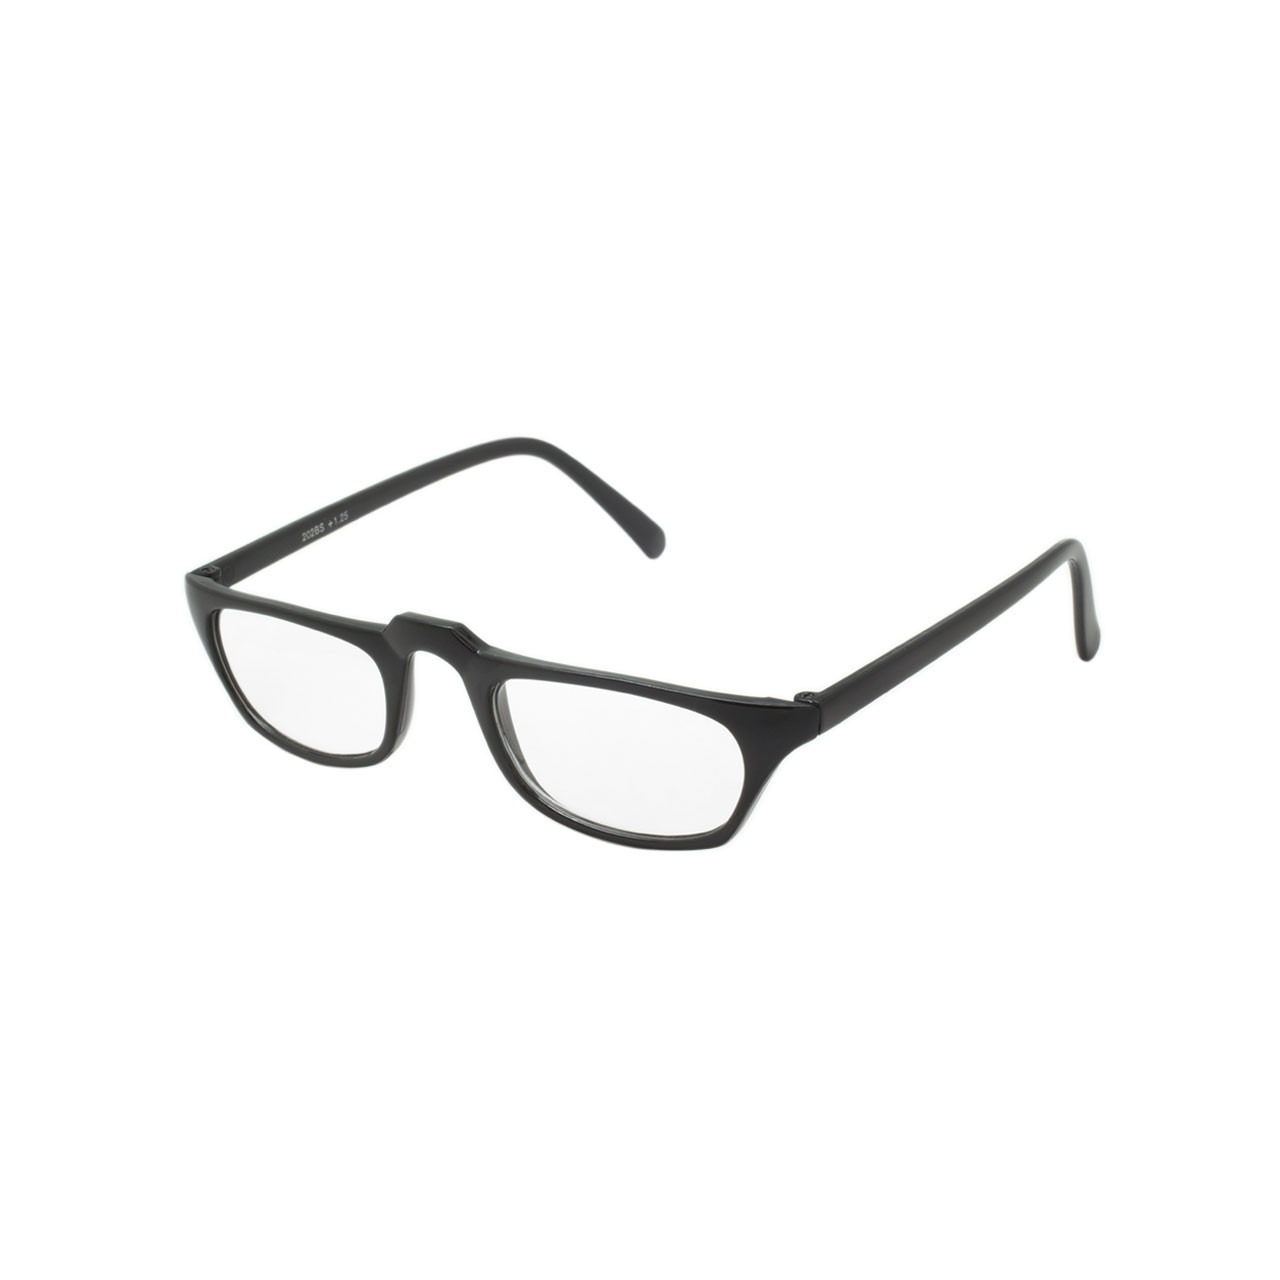 d116f7503826 Unisex Cheetah Readers - Single Powers. 4 Pairs Reading Glasses